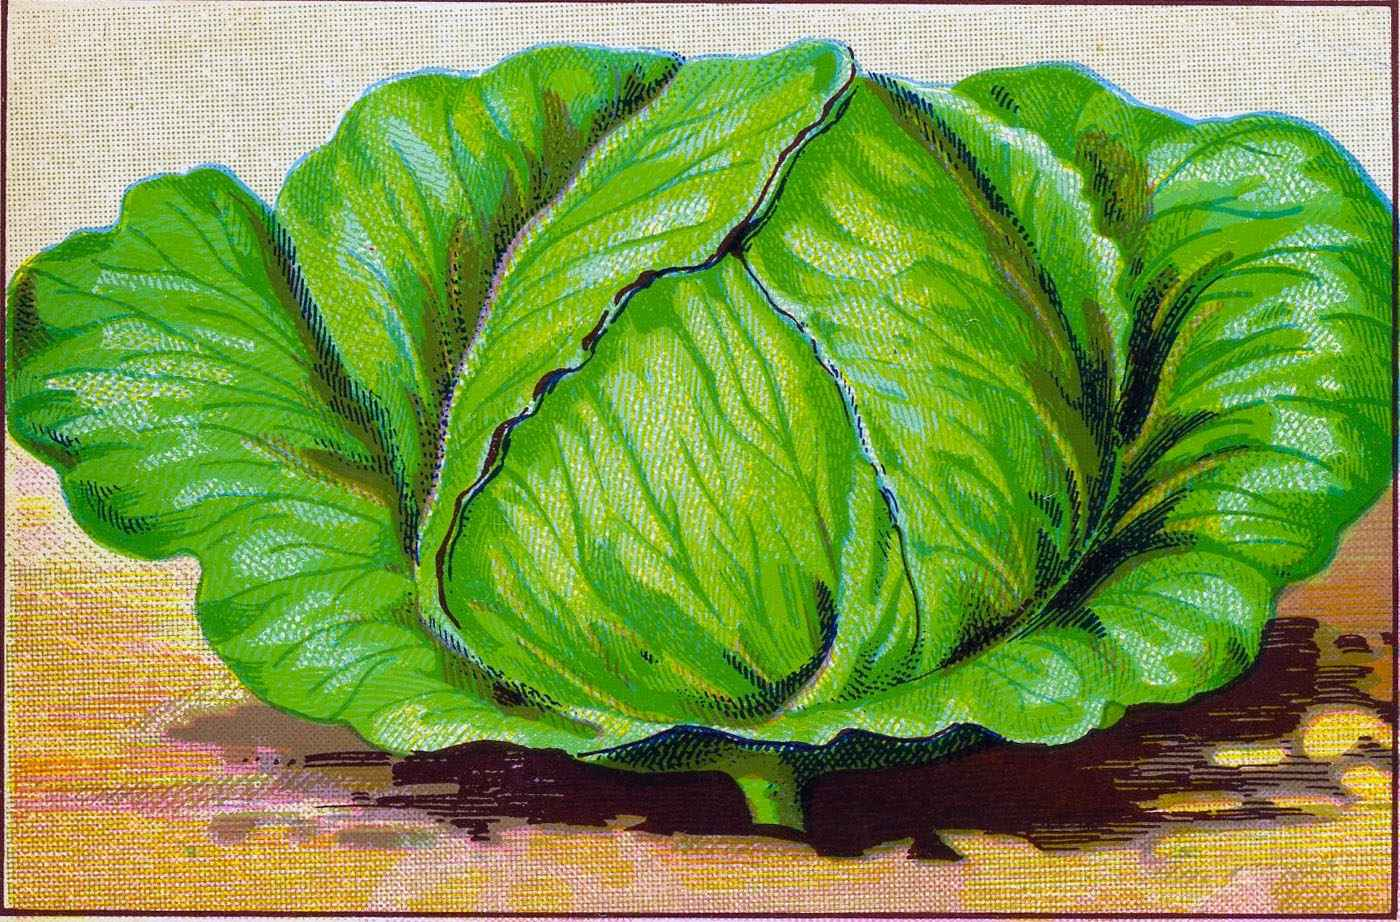 Cabbage clipart cabbage plant. Clip art related keywords